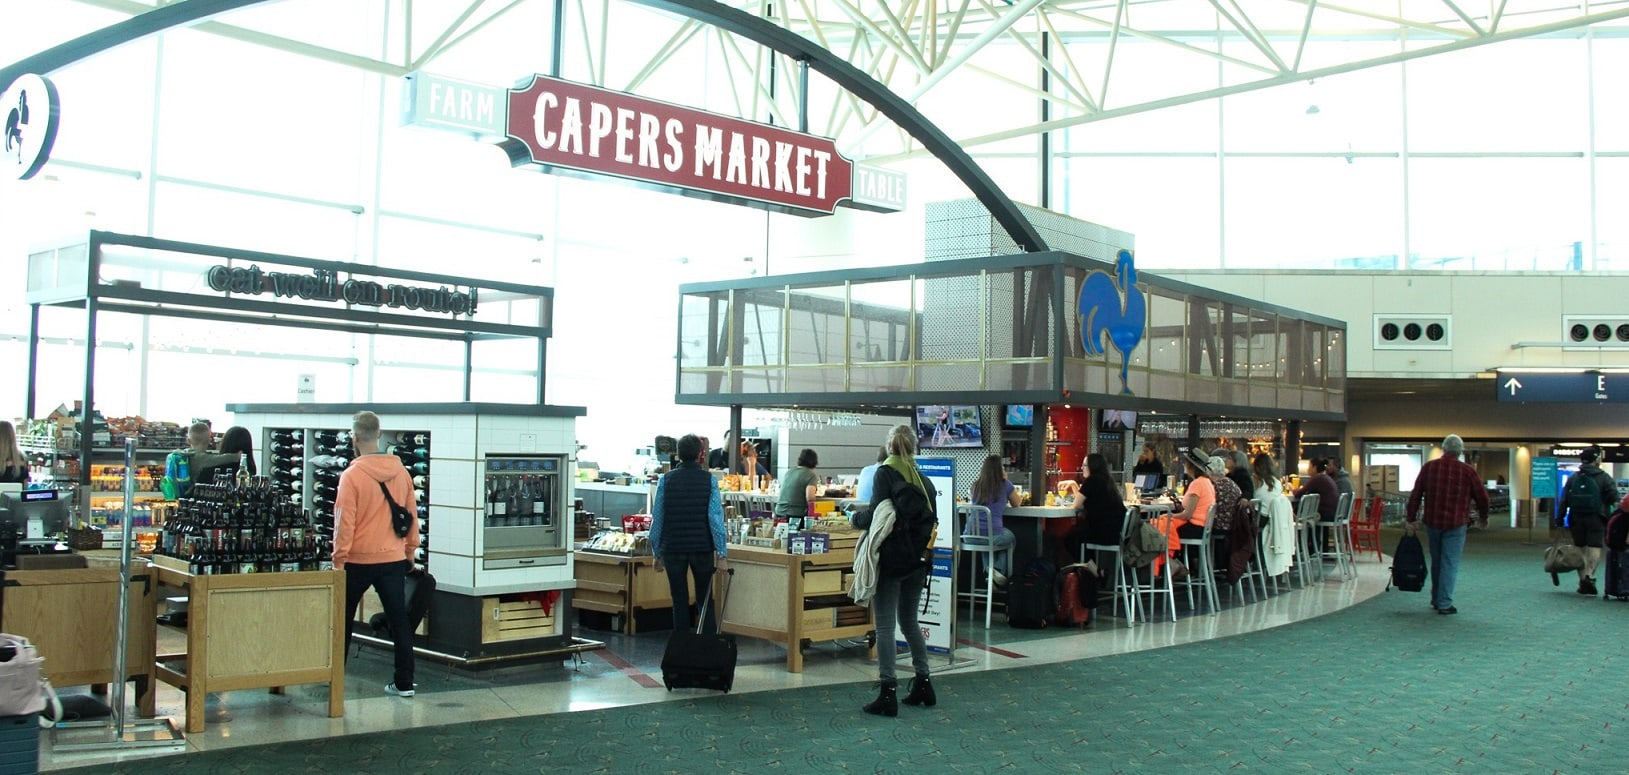 Capers Market joins priority pass